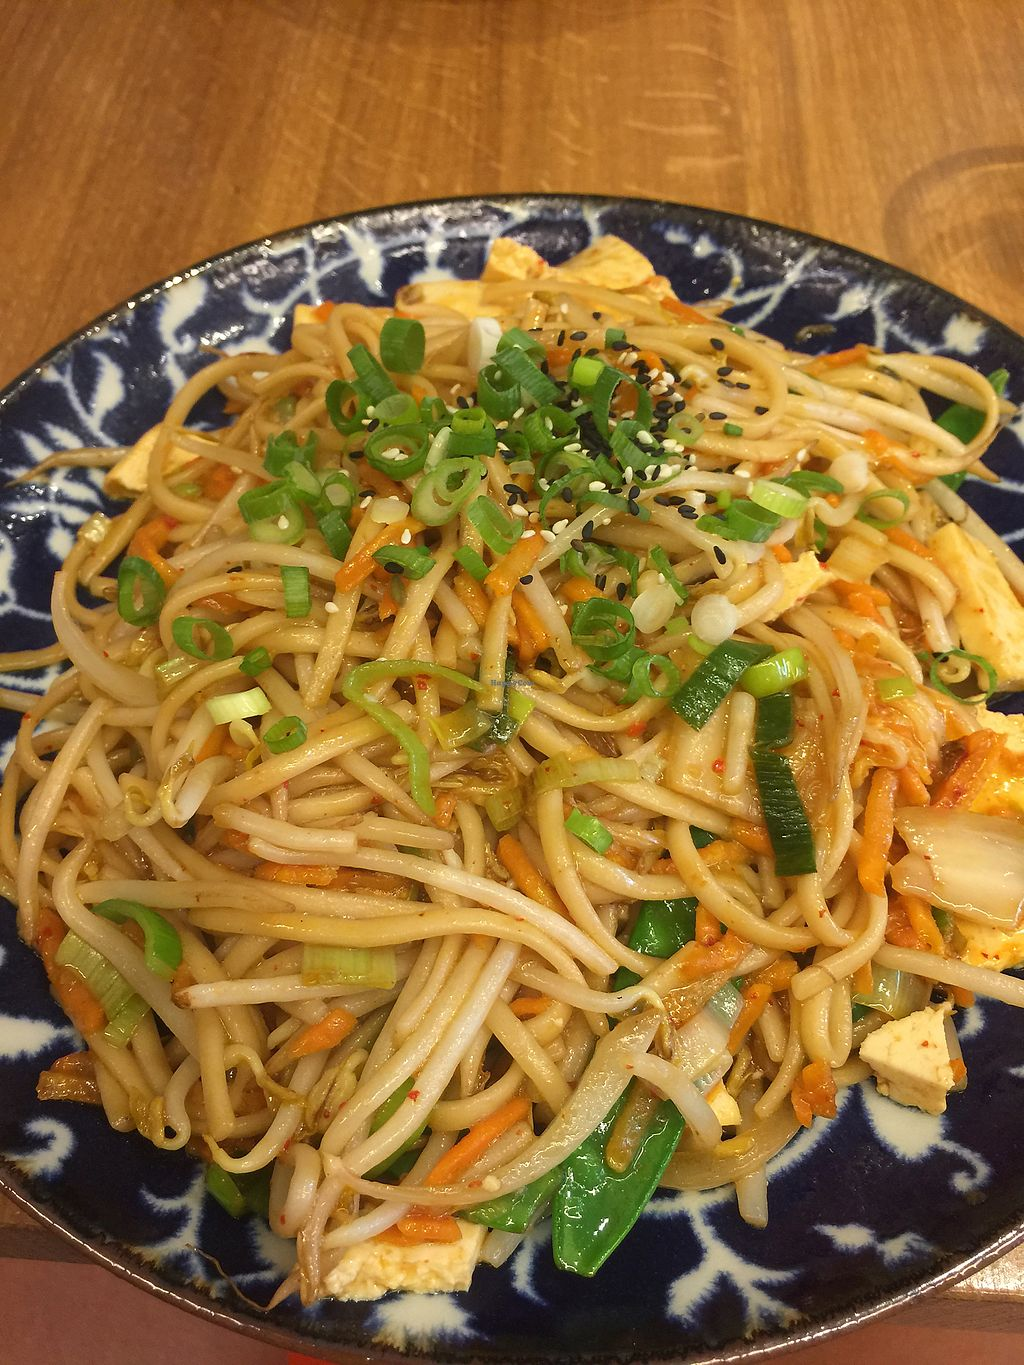 """Photo of Marco Polo Noodles  by <a href=""""/members/profile/Skye"""">Skye</a> <br/>vegan wok <br/> July 18, 2017  - <a href='/contact/abuse/image/88154/281885'>Report</a>"""